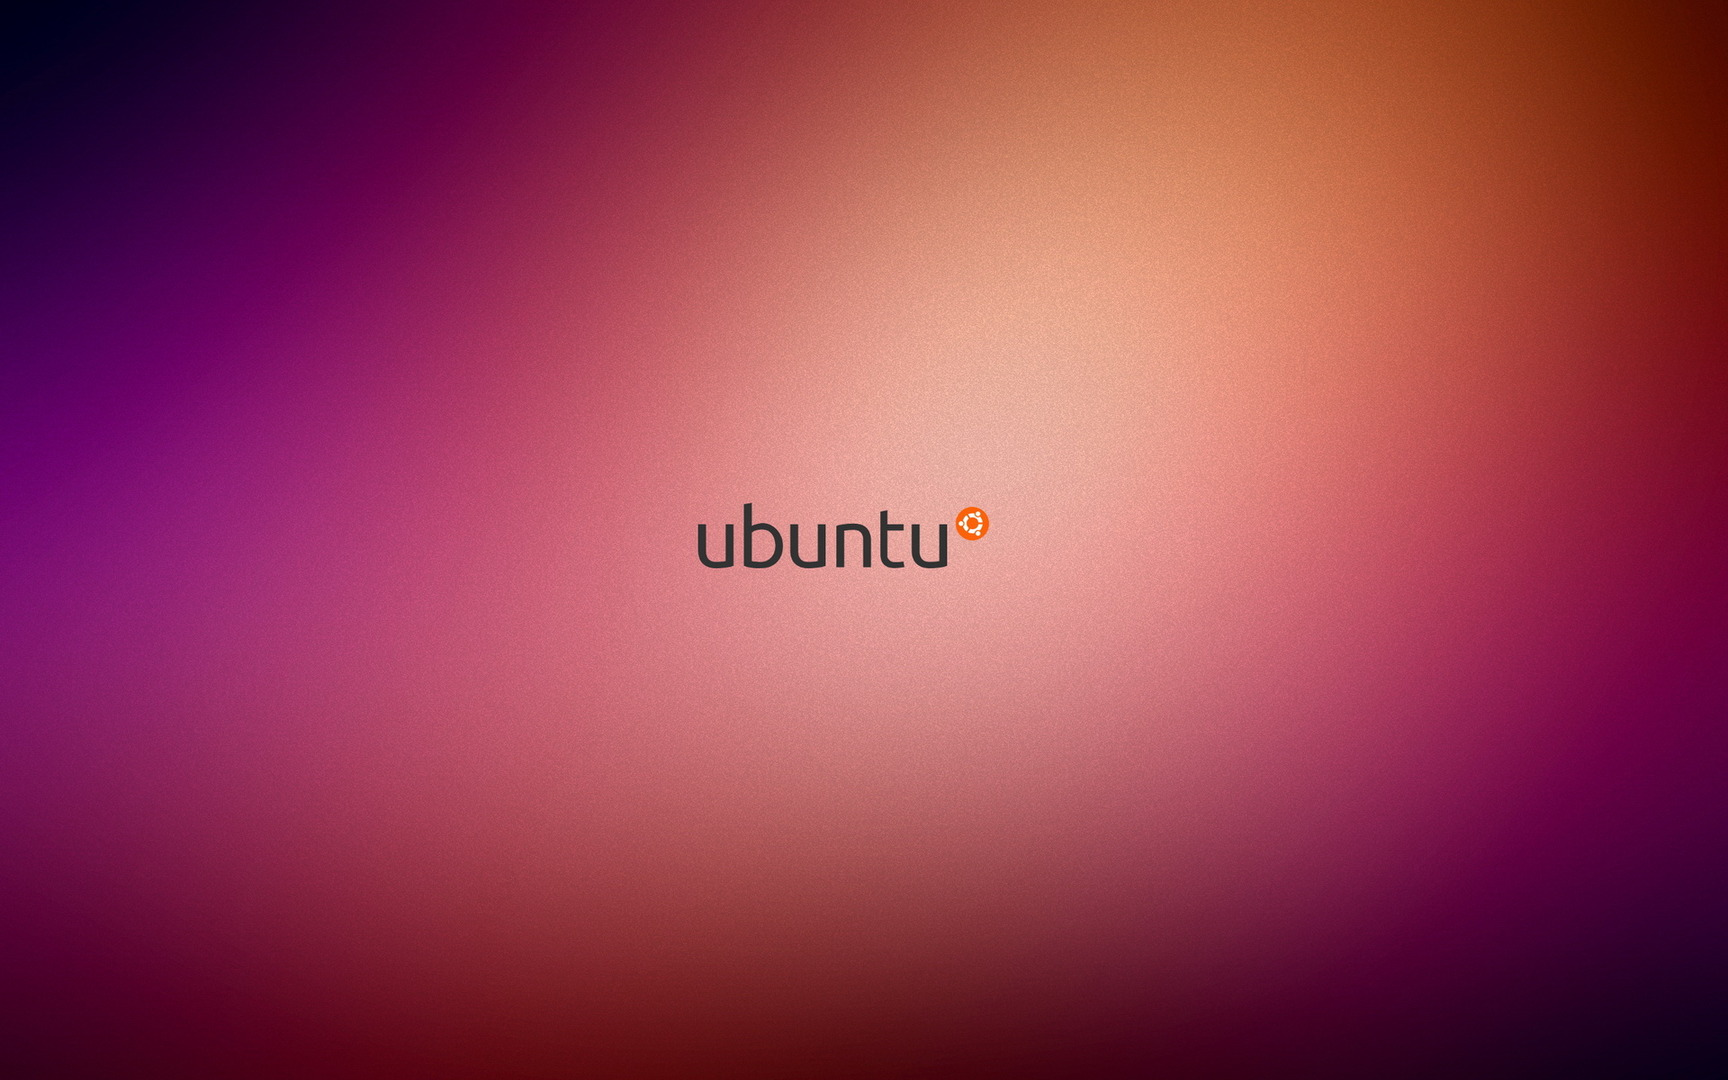 Ubuntu Desktop Wallpaper Girl 1920 1728x1080